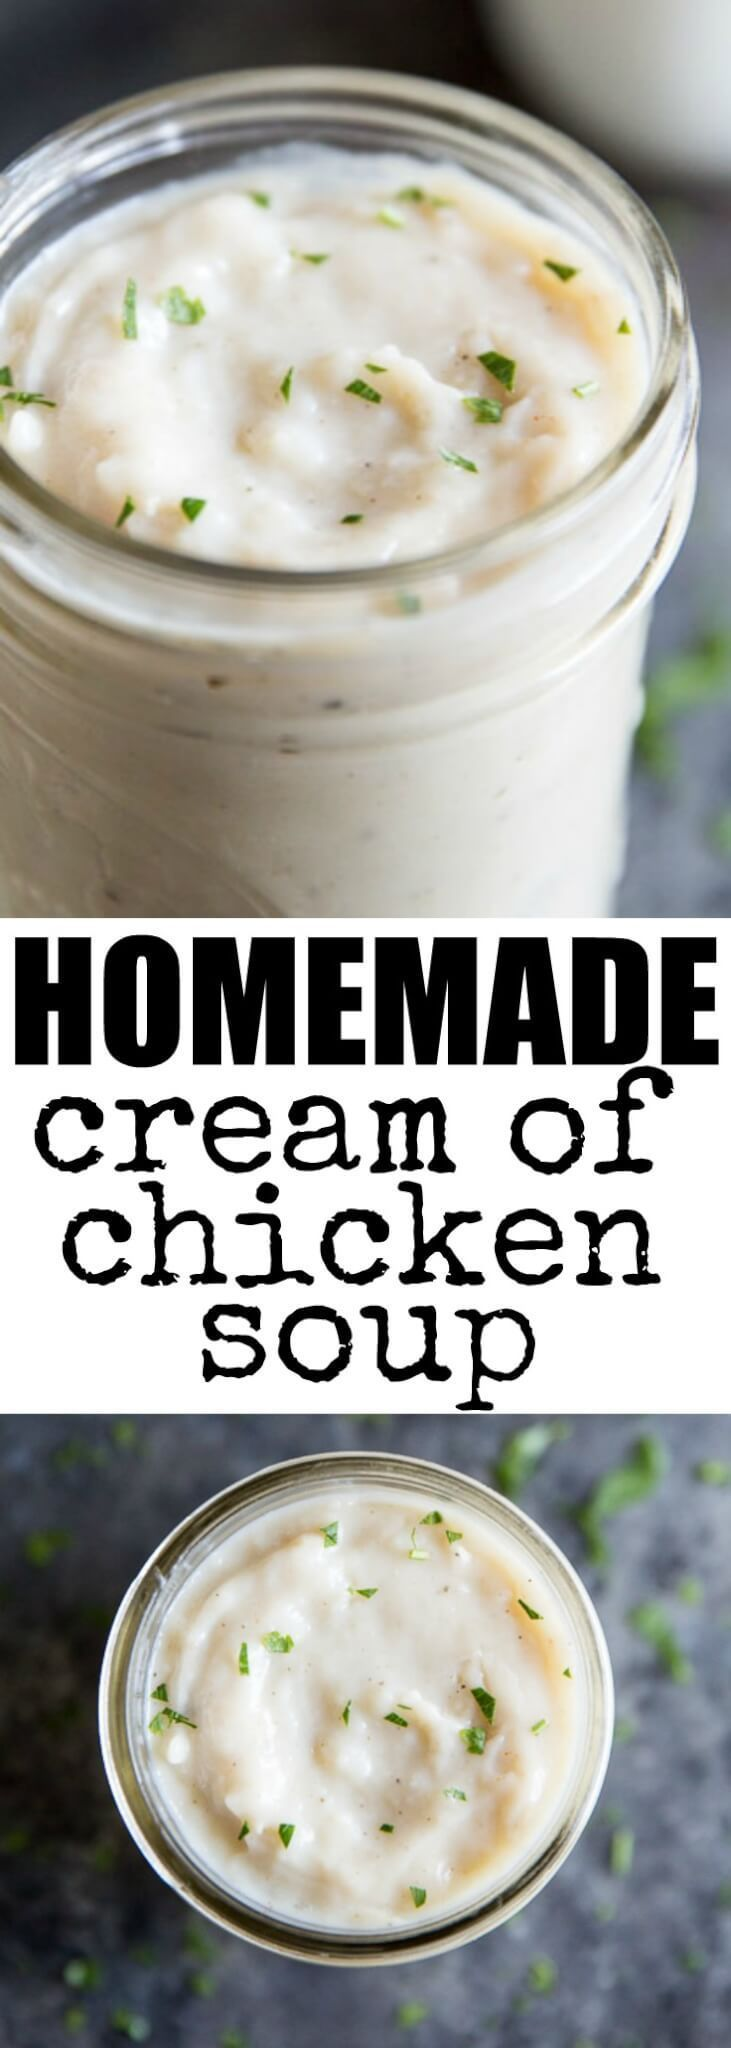 what can you use instead of cream of chicken soup